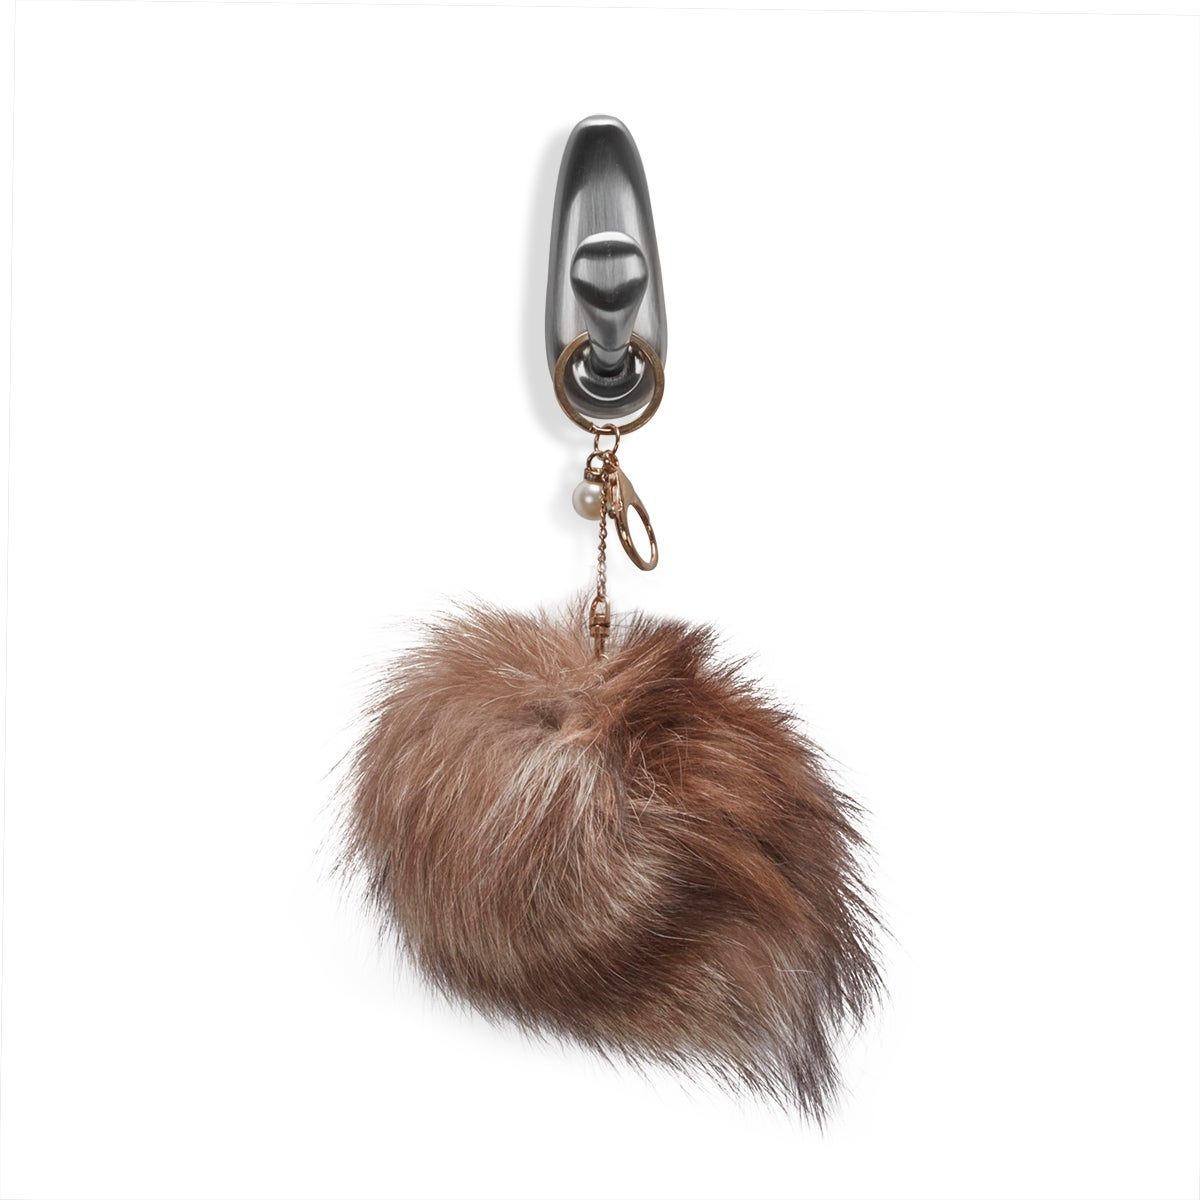 Tan KEYCHAINPOM accessory